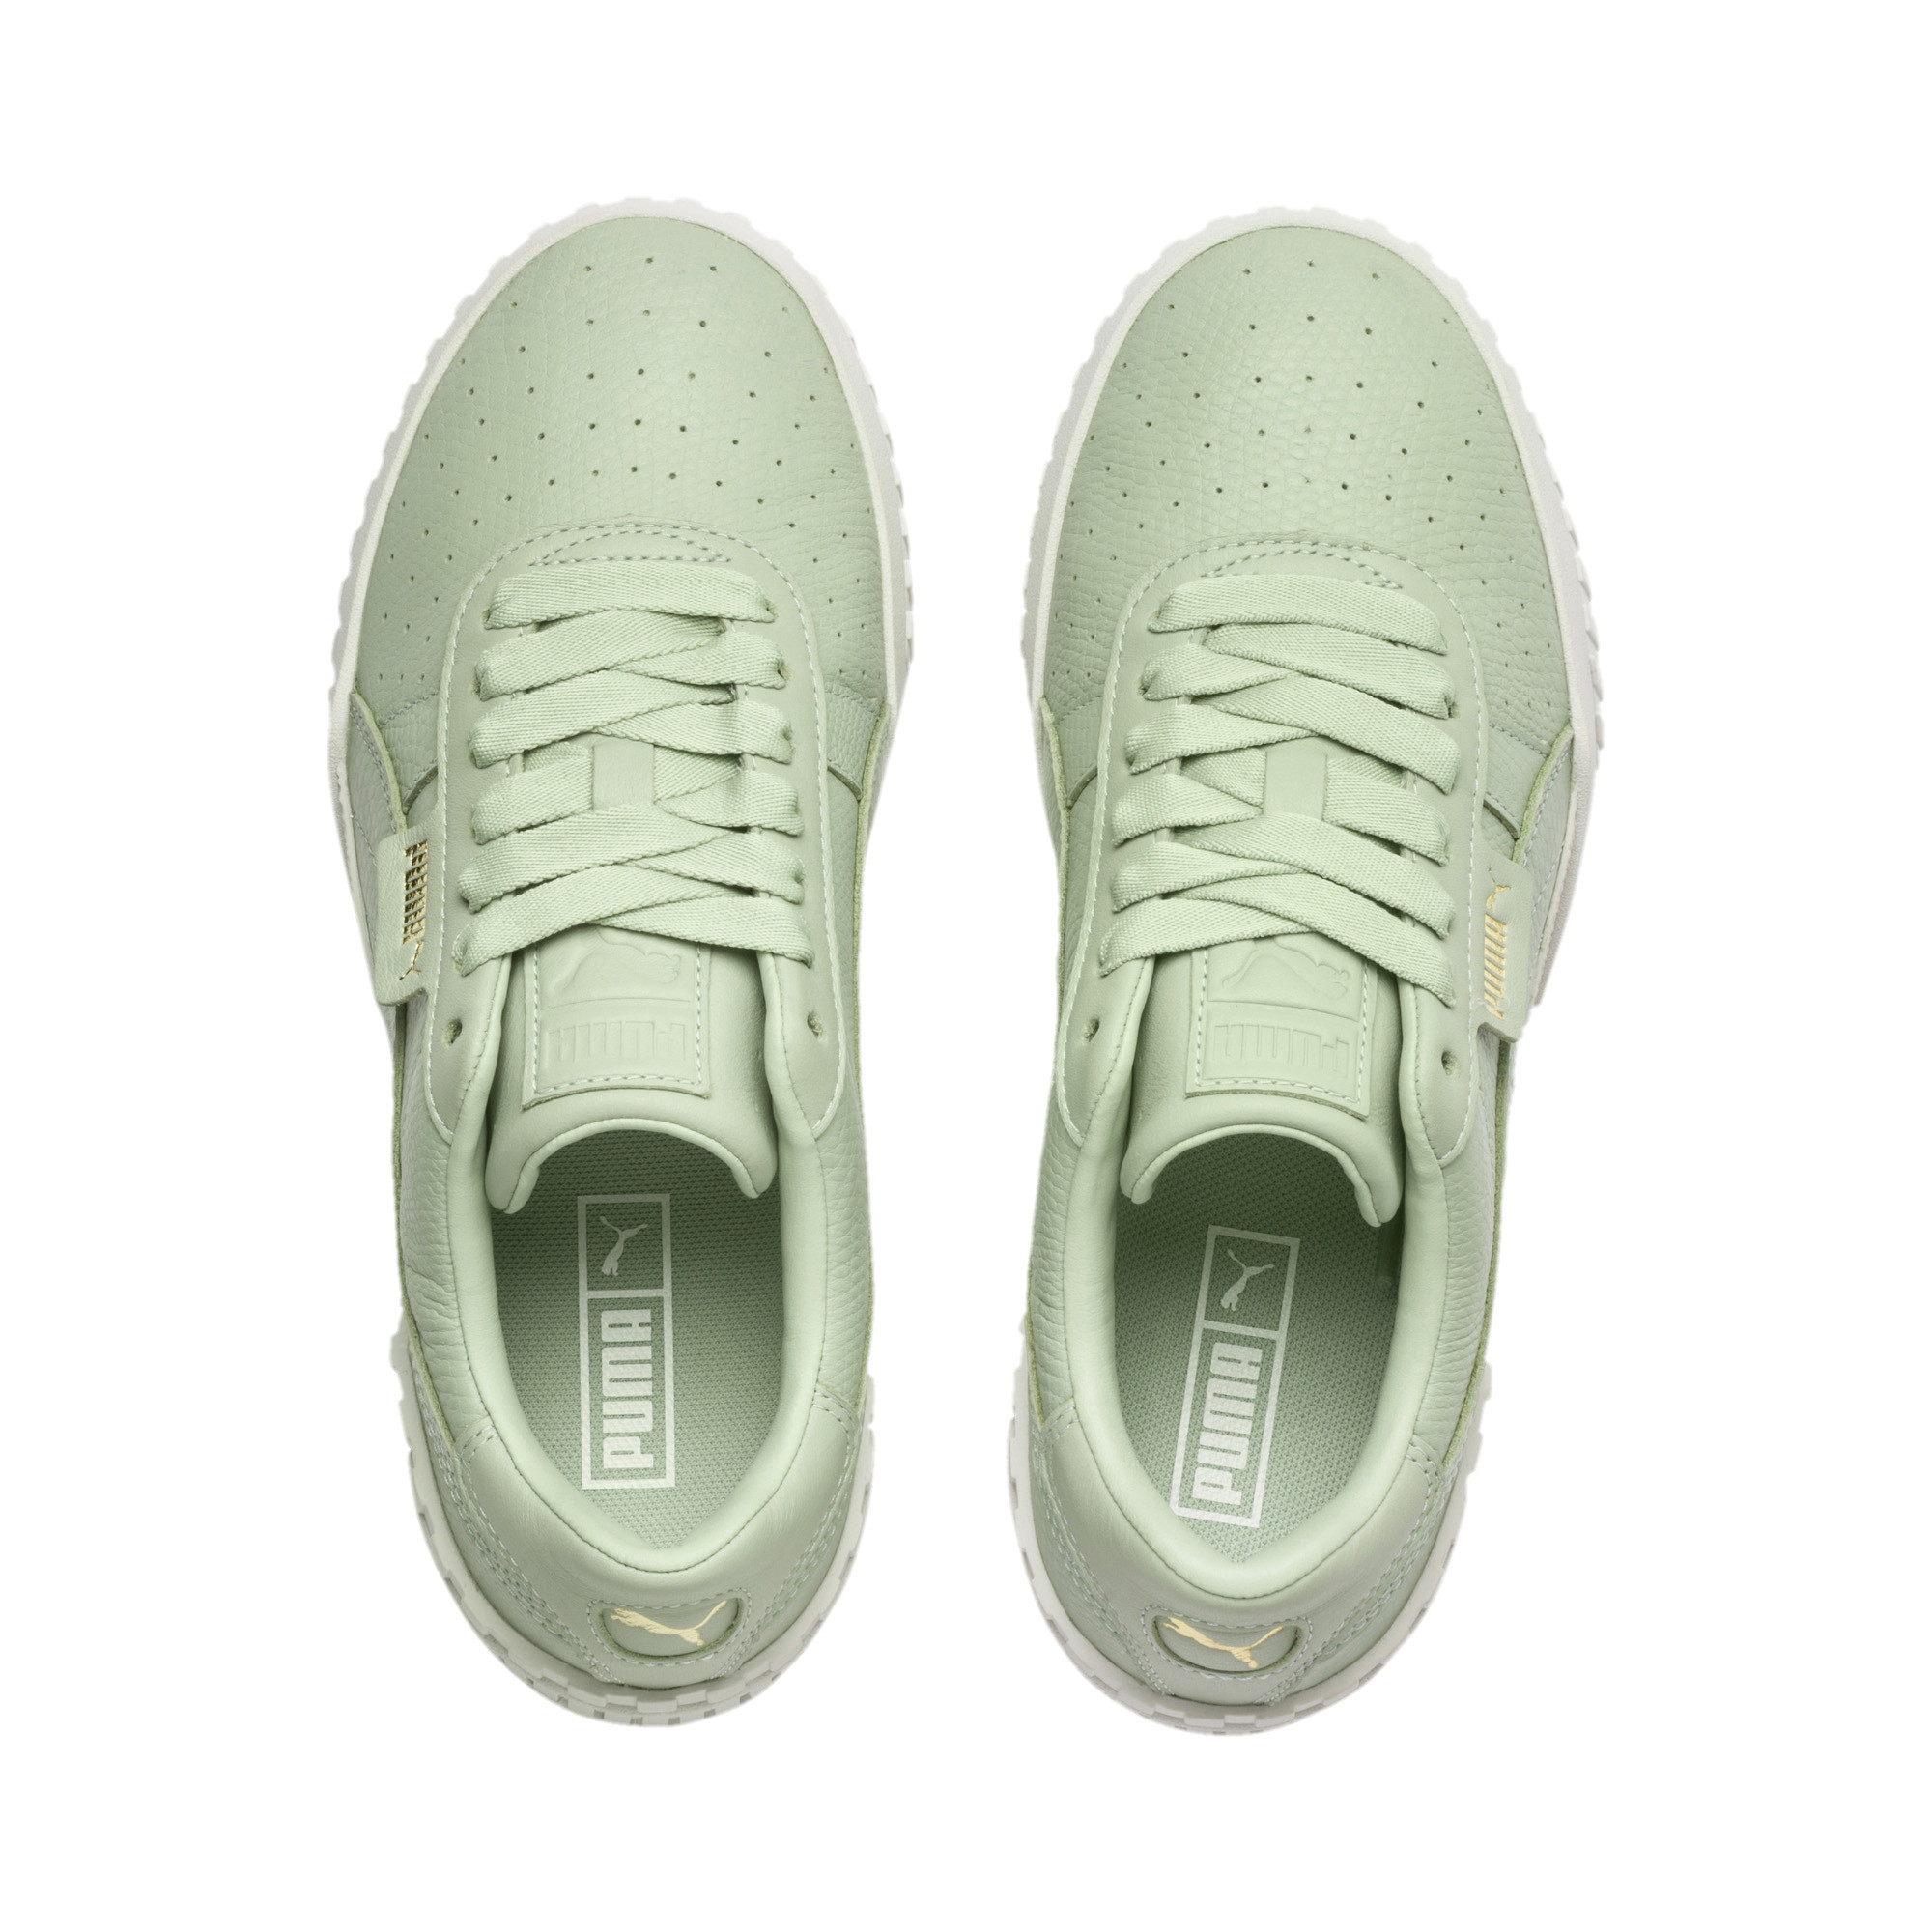 PUMA-Cali-Emboss-Women-039-s-Sneakers-Women-Shoe-Evolution thumbnail 8